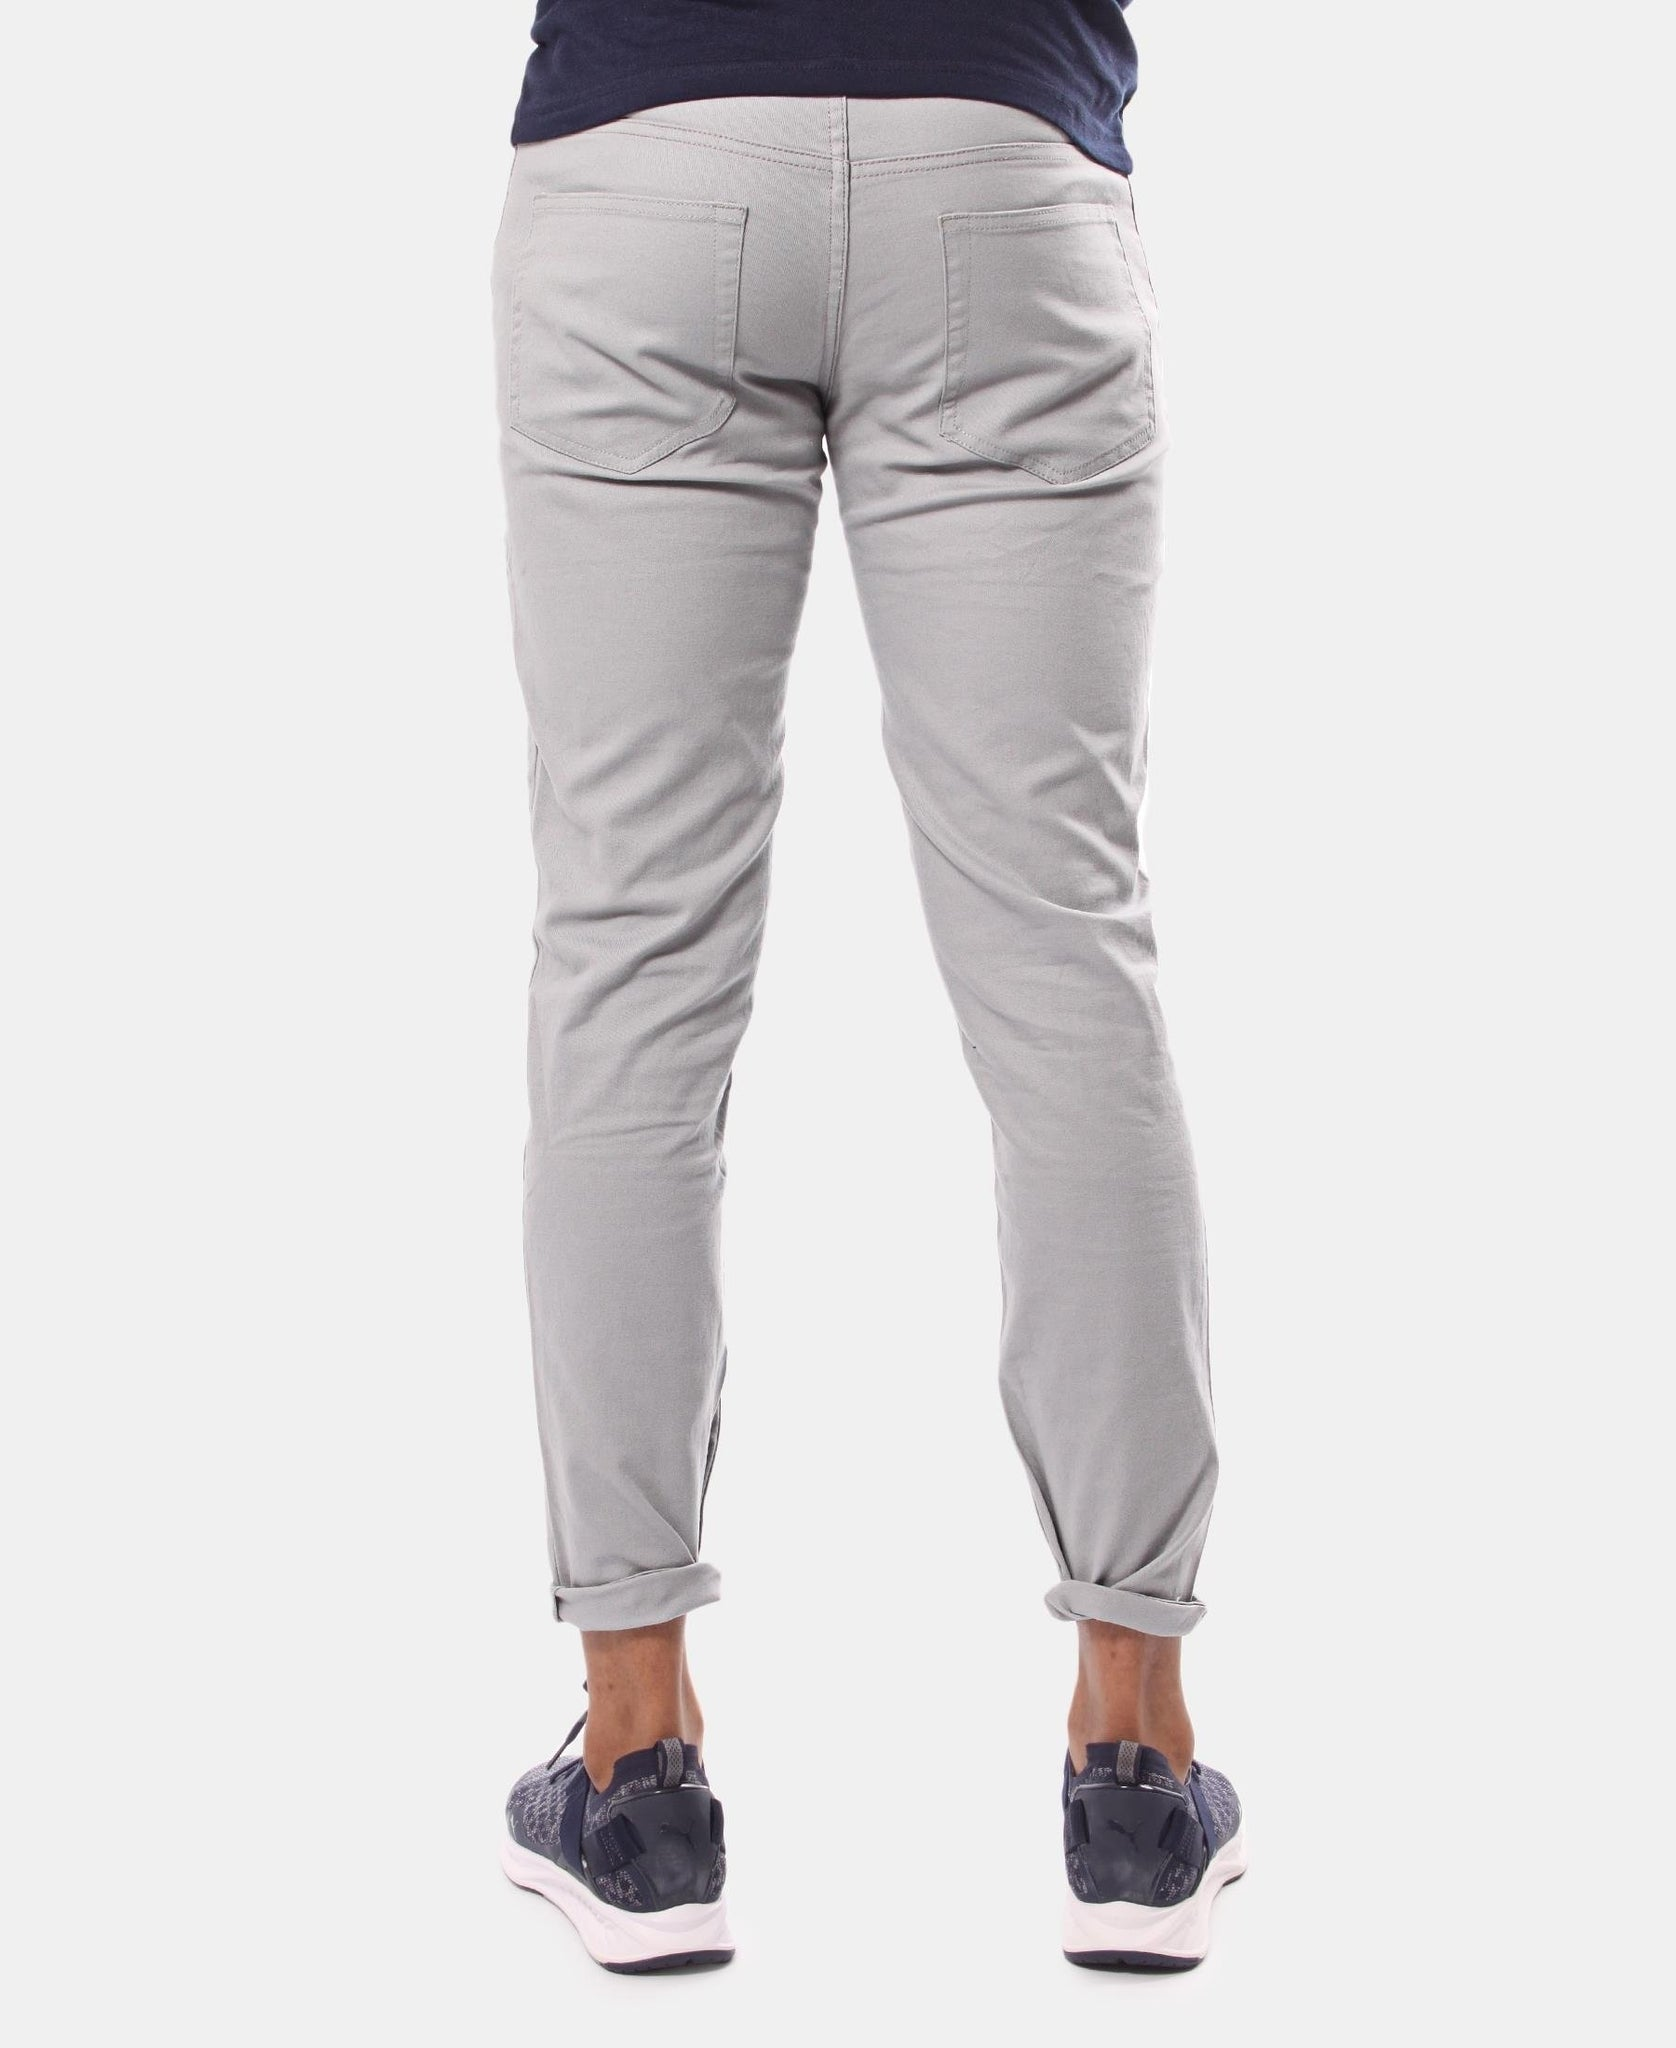 Men's Casual Pants - Light Grey